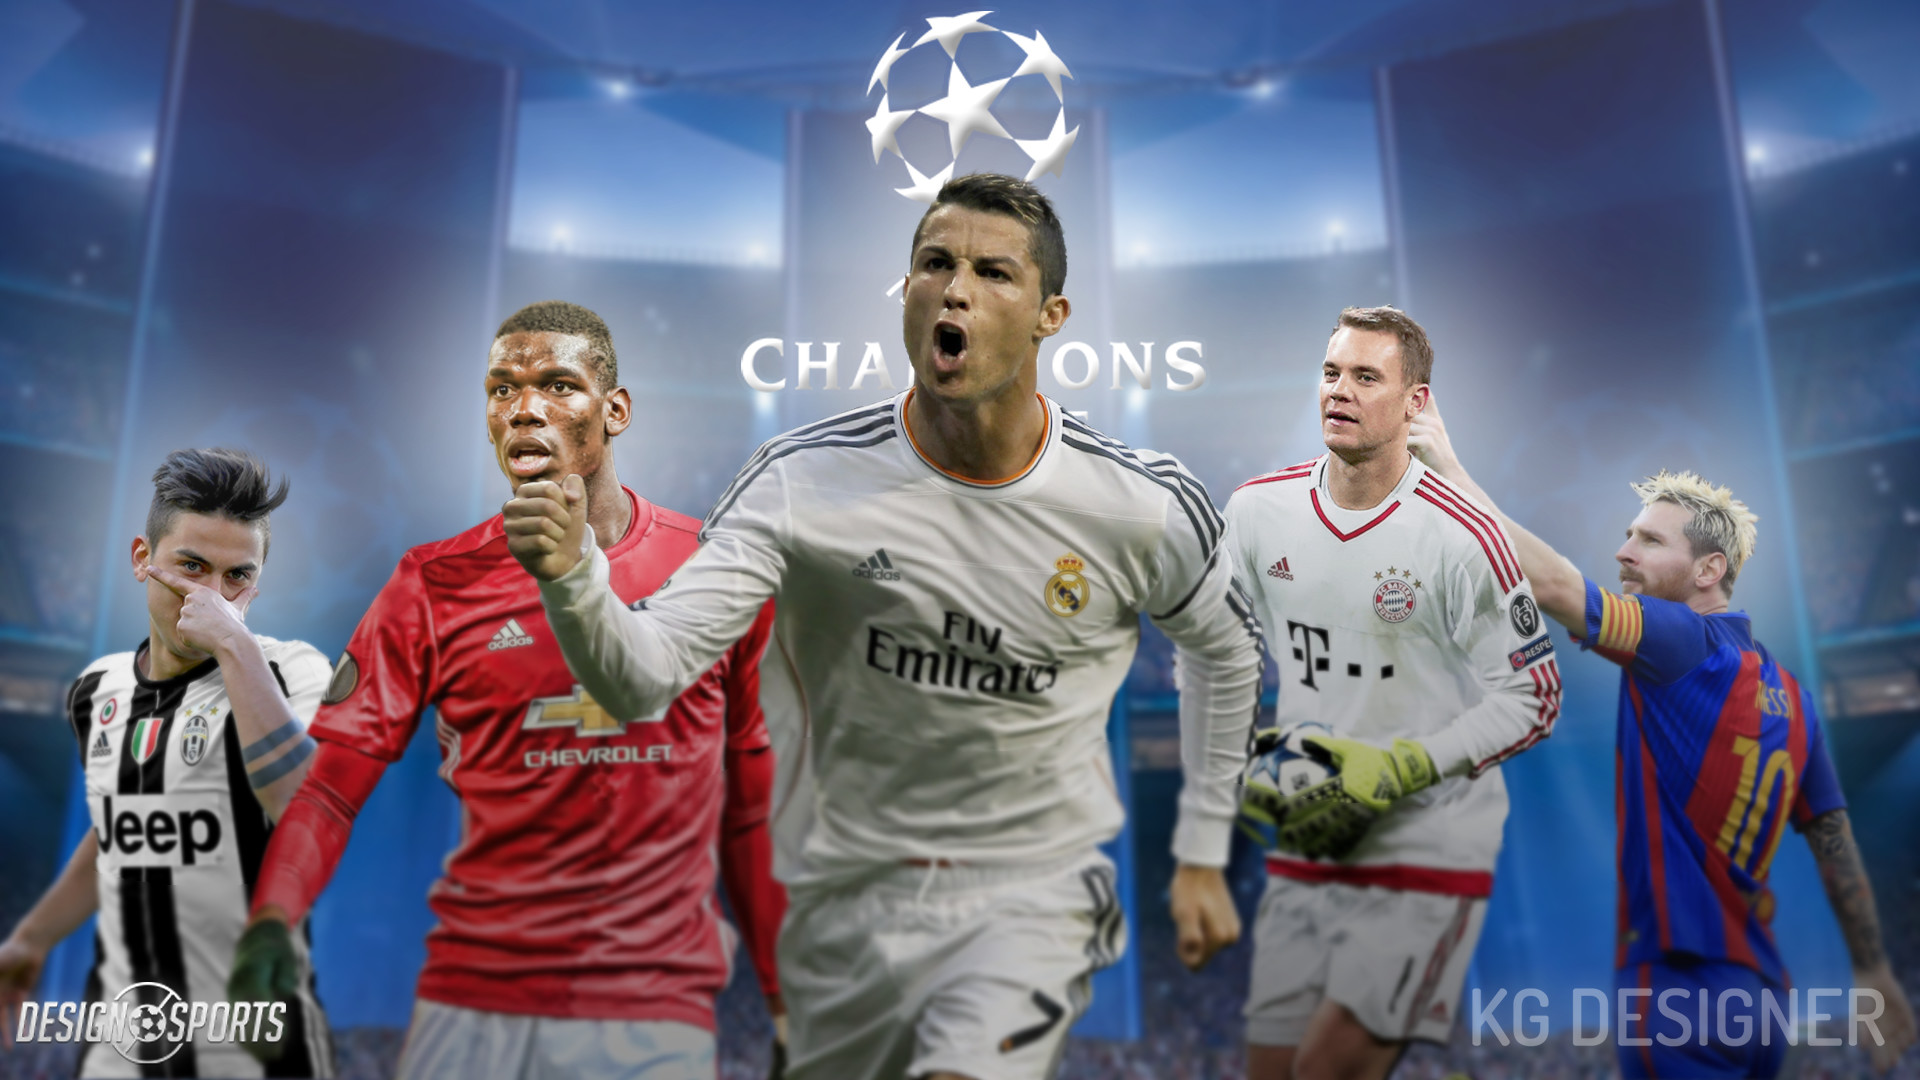 Champions League: Uefa Champions League Wallpaper (73+ Images